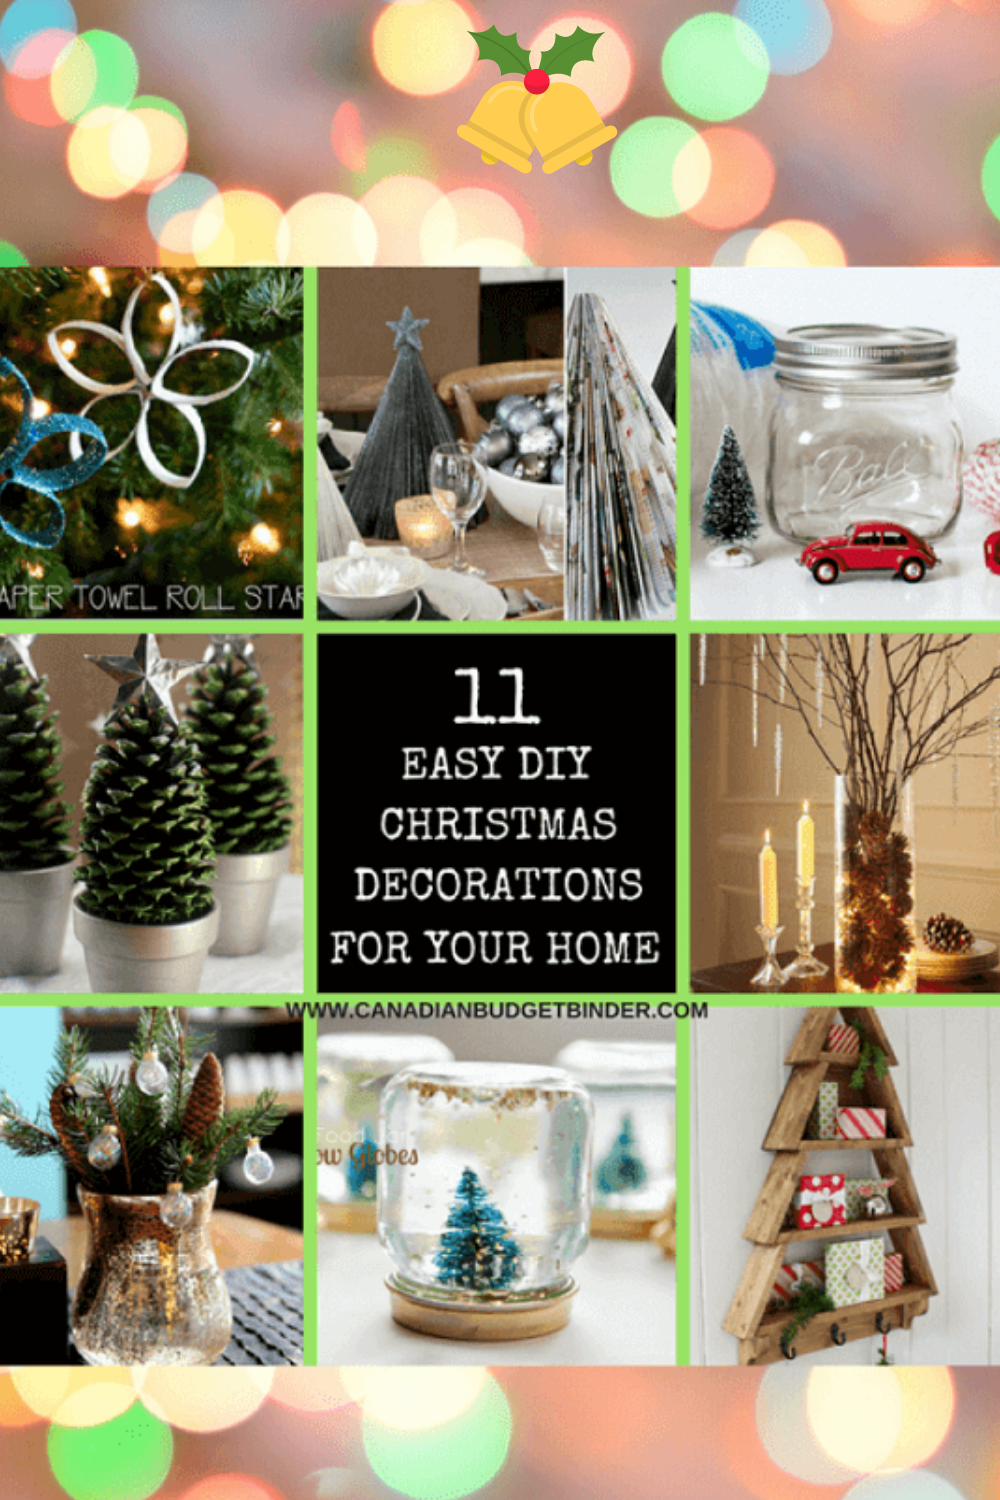 11 DIY Easy Christmas Decorations For Your Home : The Saturday Weekend Review #199